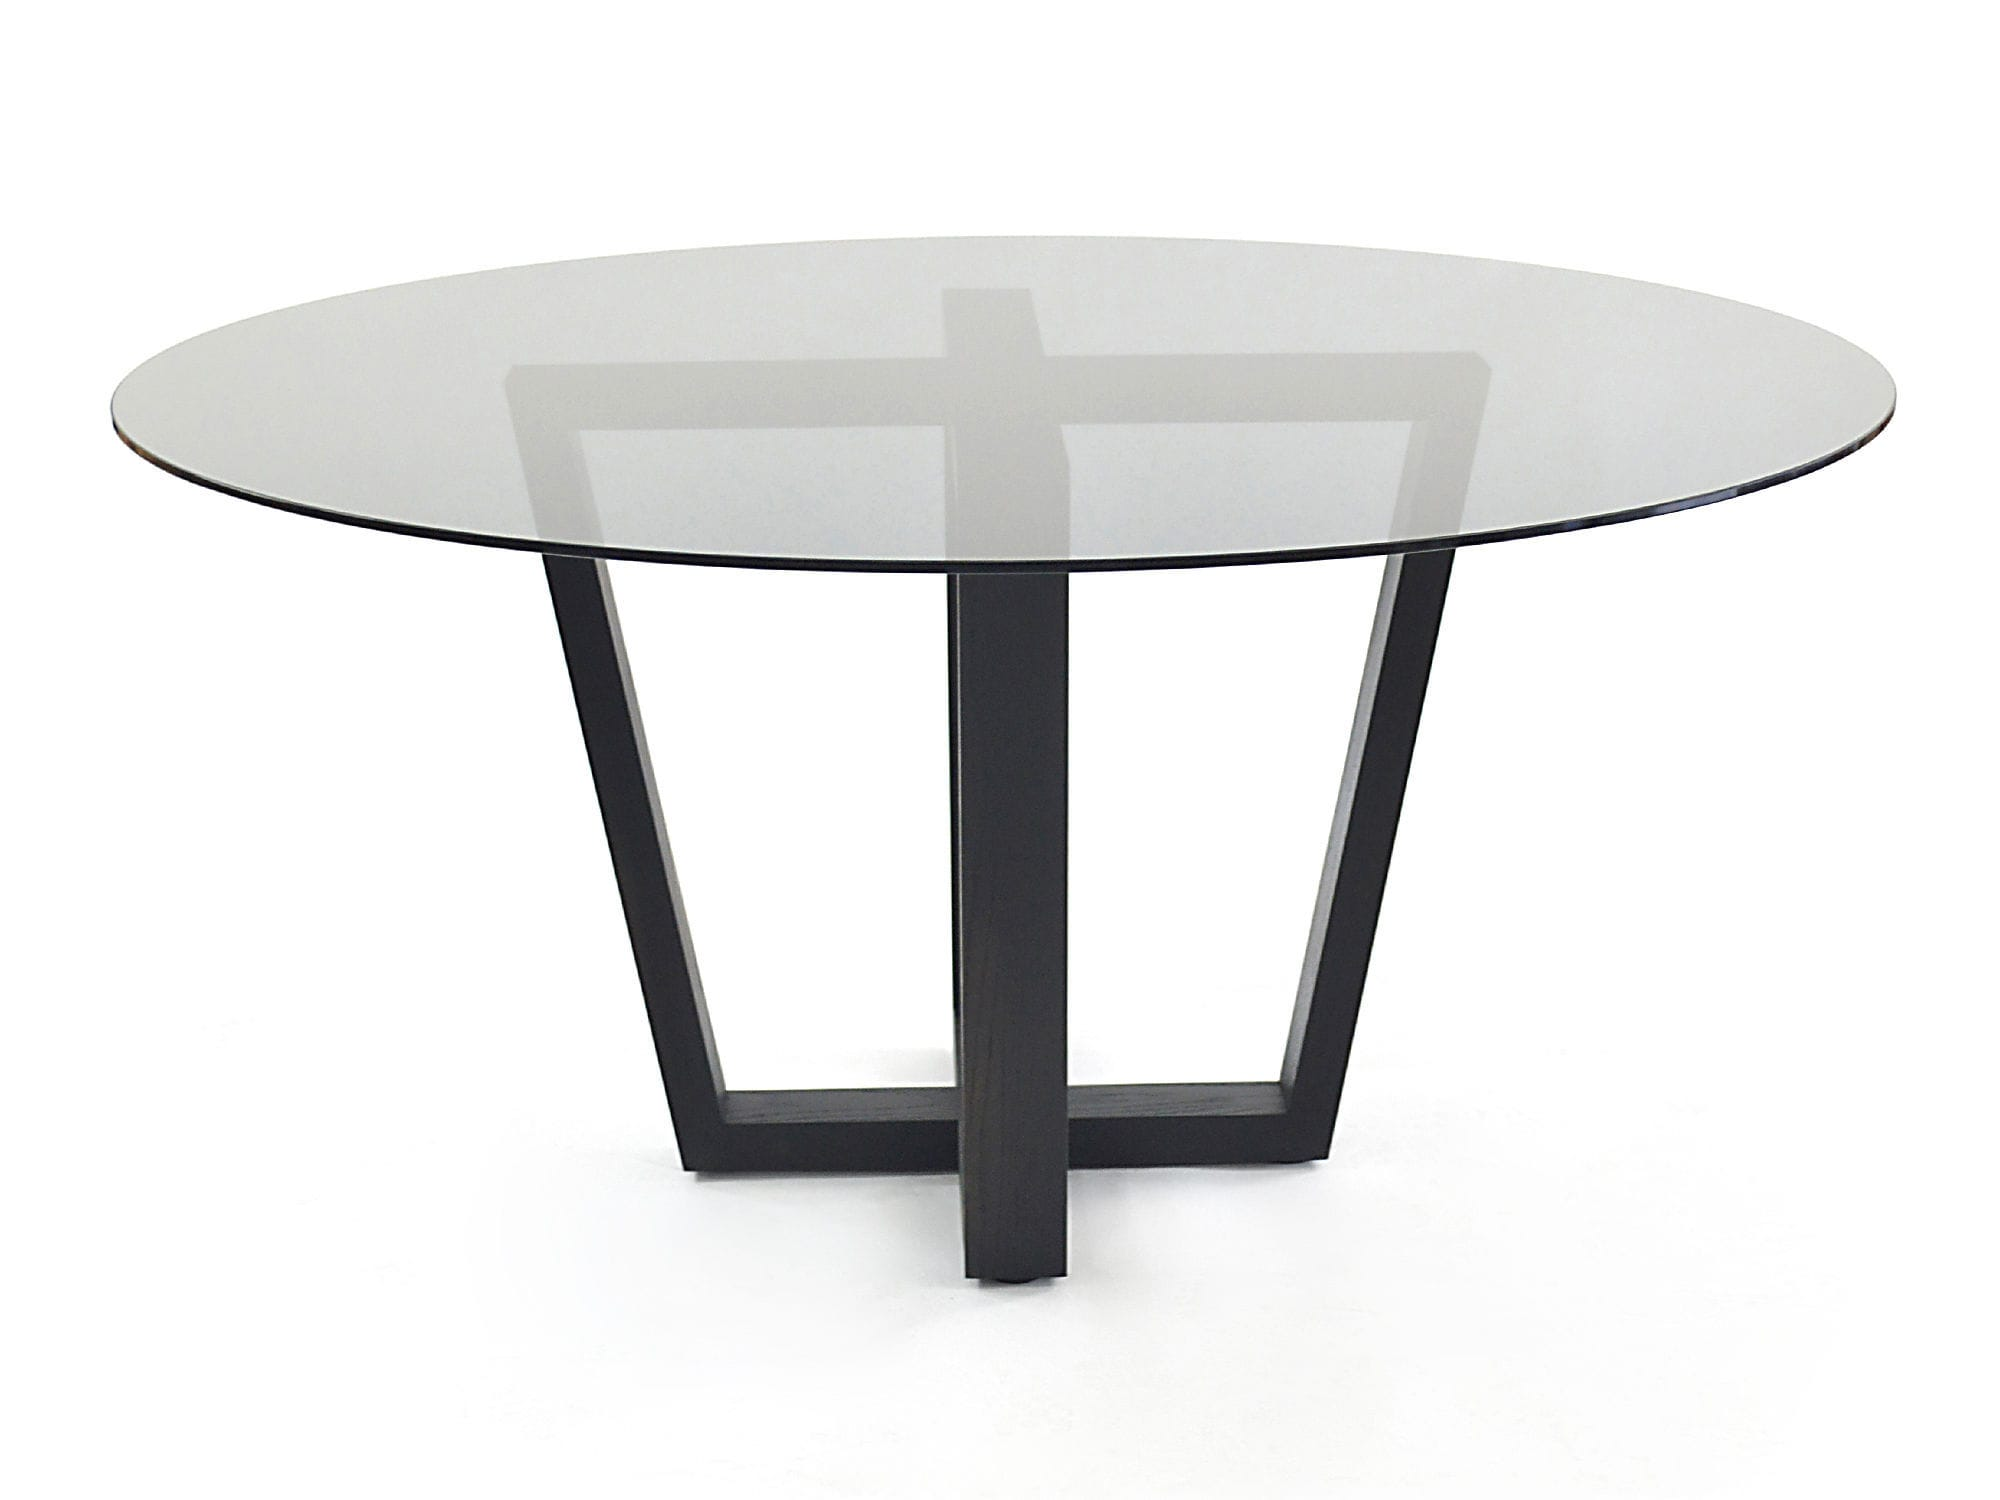 Contemporary Dining Table Smoked Glass Rotsen Furniture Wooden Glass Round